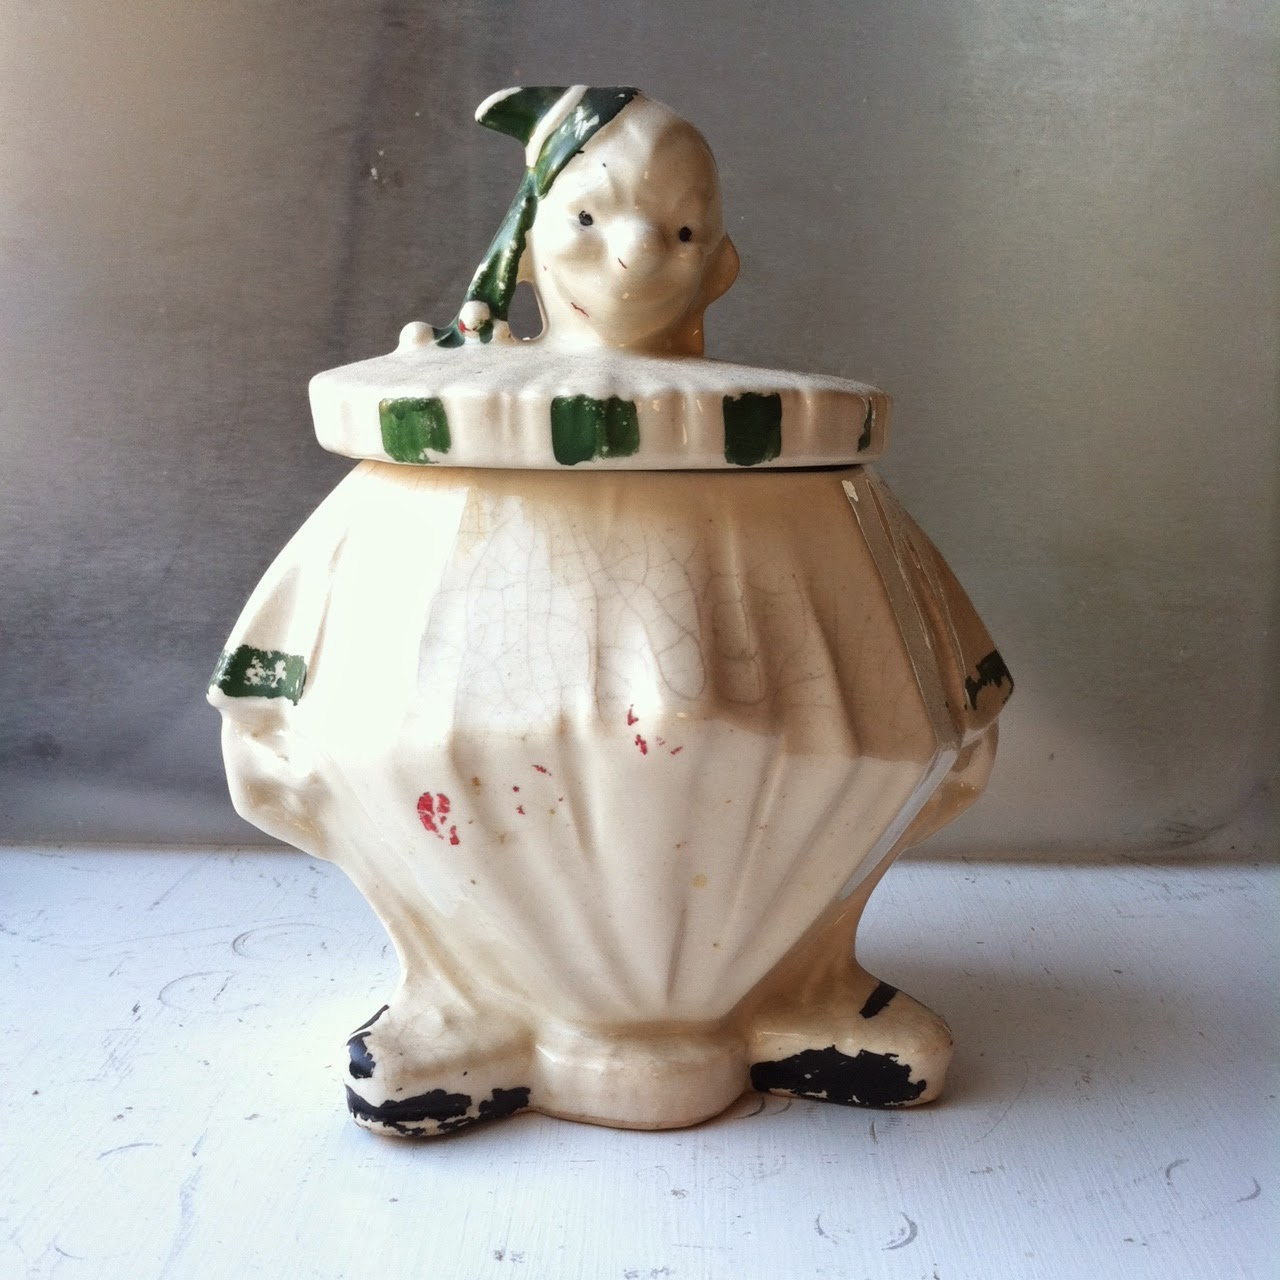 https://www.zibbet.com/second-story/mccoy-clown-cookie-jar